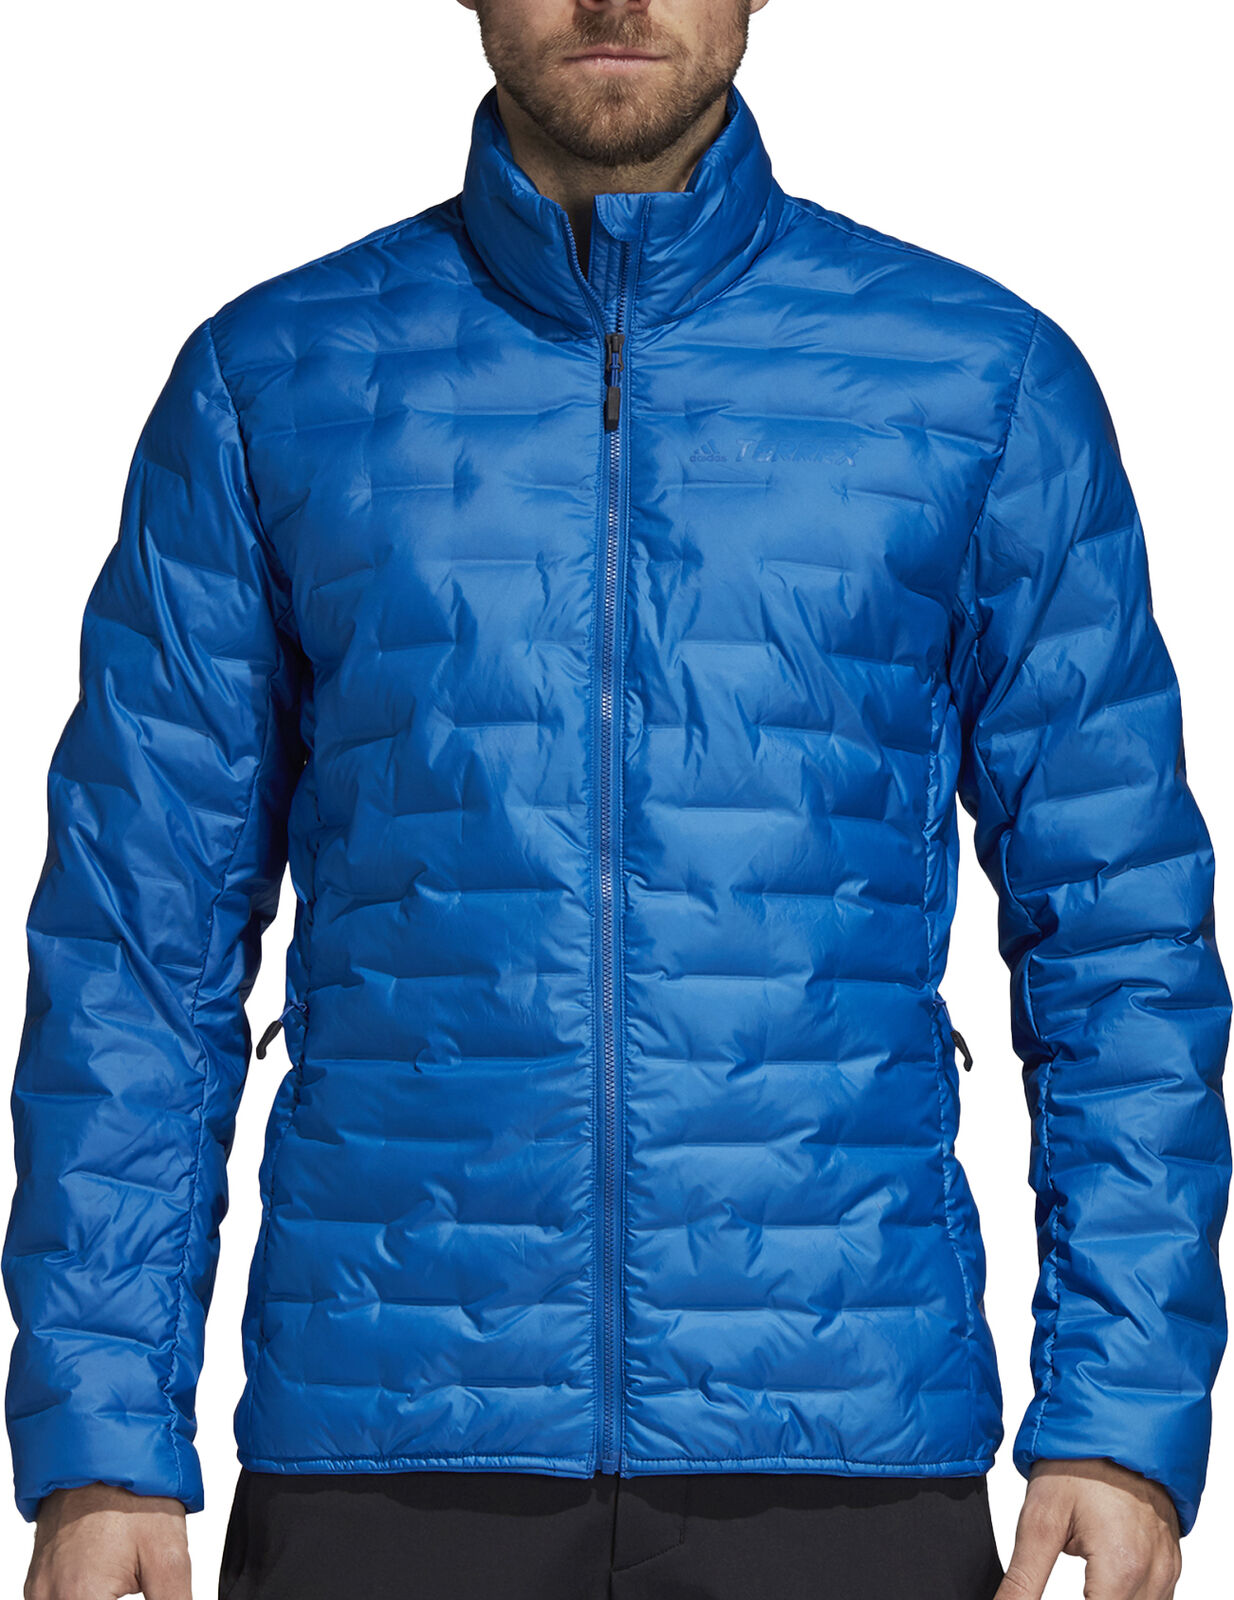 Adidas Terrex light mens Down Jacket-azul